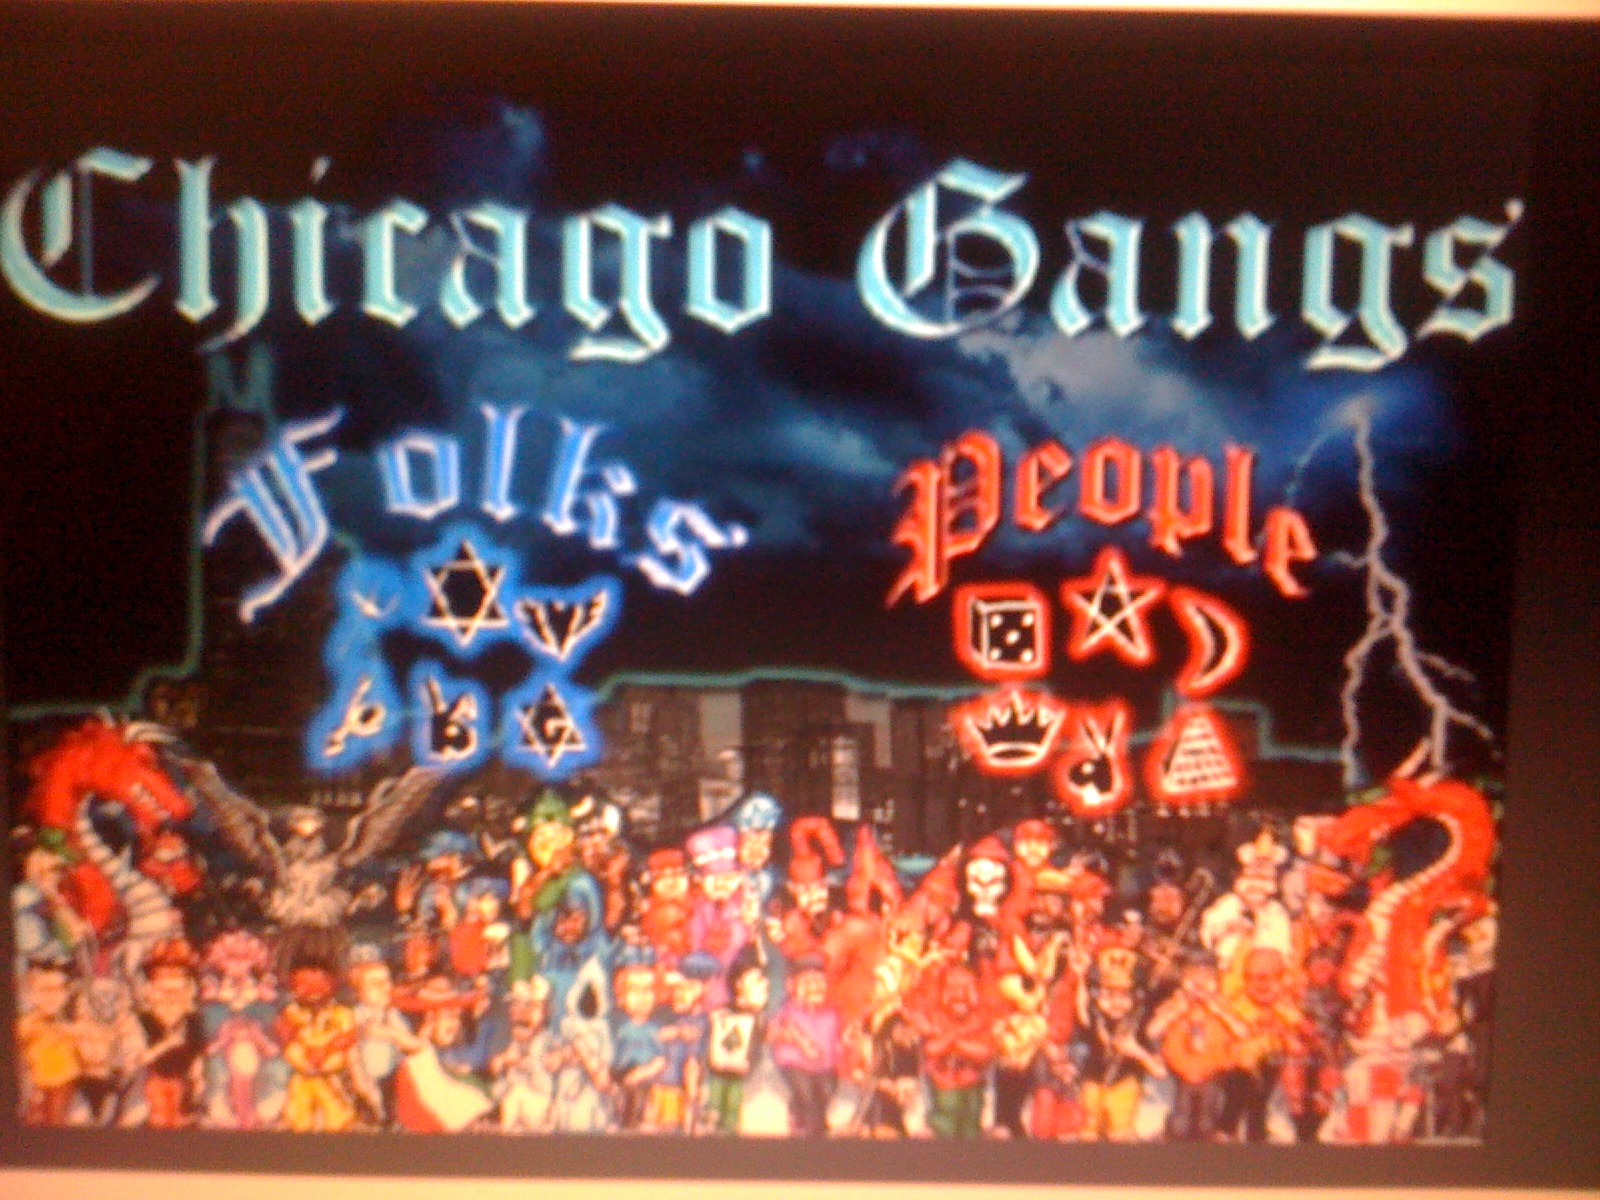 Street gangs in Chicago, Illinois